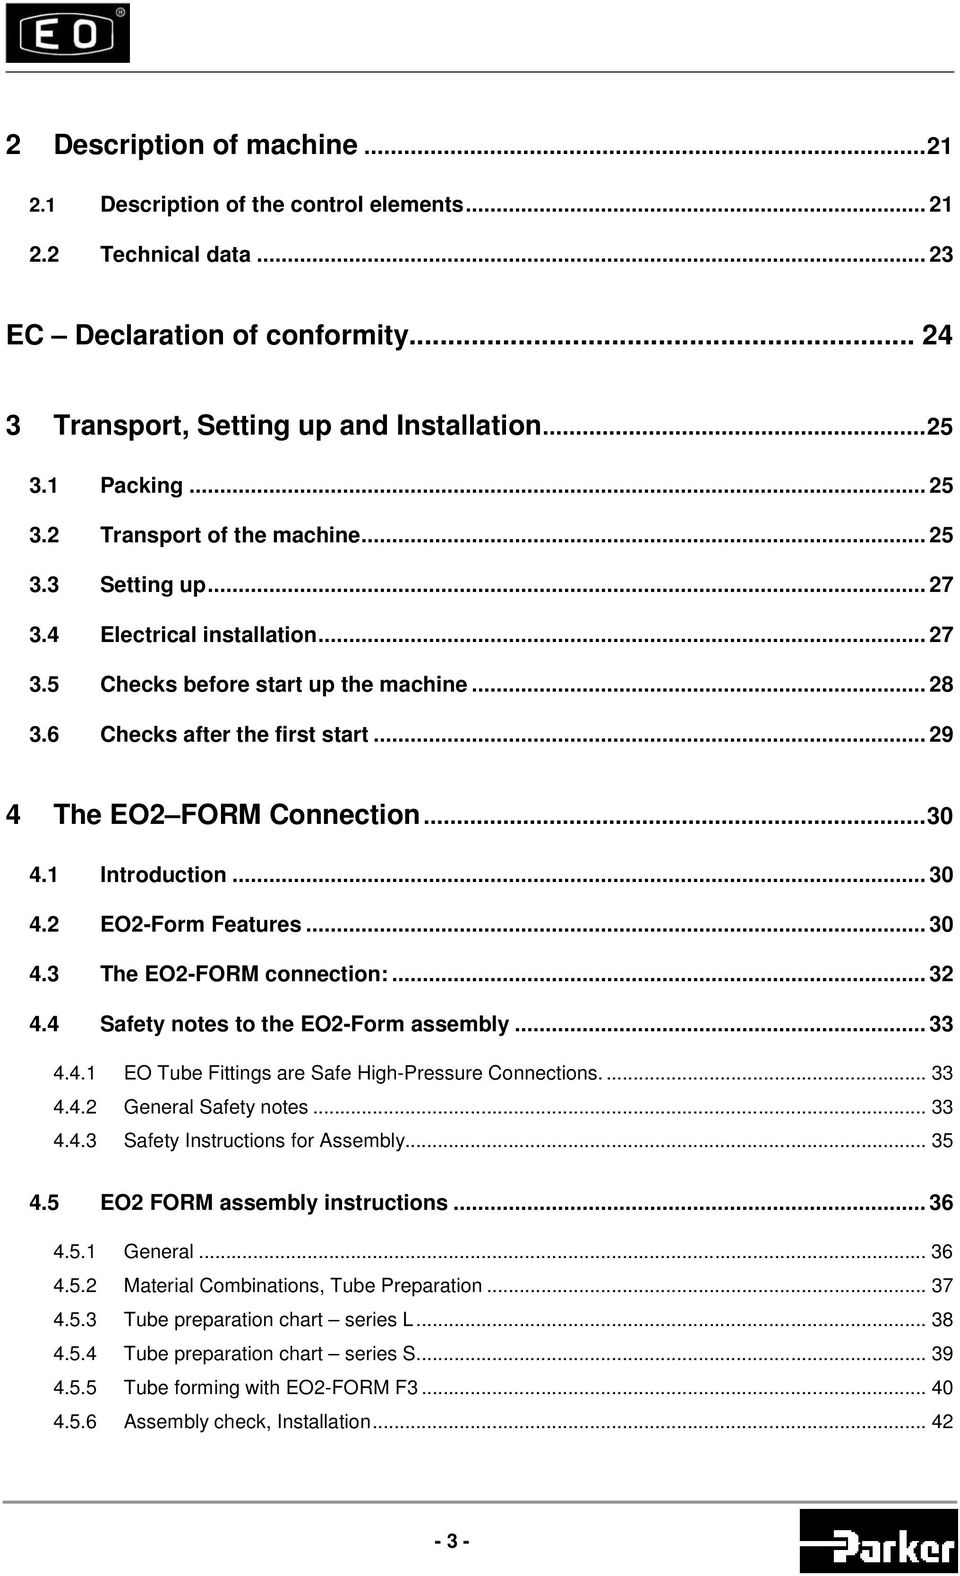 ..30 4.1 Introduction... 30 4.2 EO2-Form Features... 30 4.3 The EO2-FORM connection:... 32 4.4 Safety notes to the EO2-Form assembly... 33 4.4.1 EO Tube Fittings are Safe High-Pressure Connections.